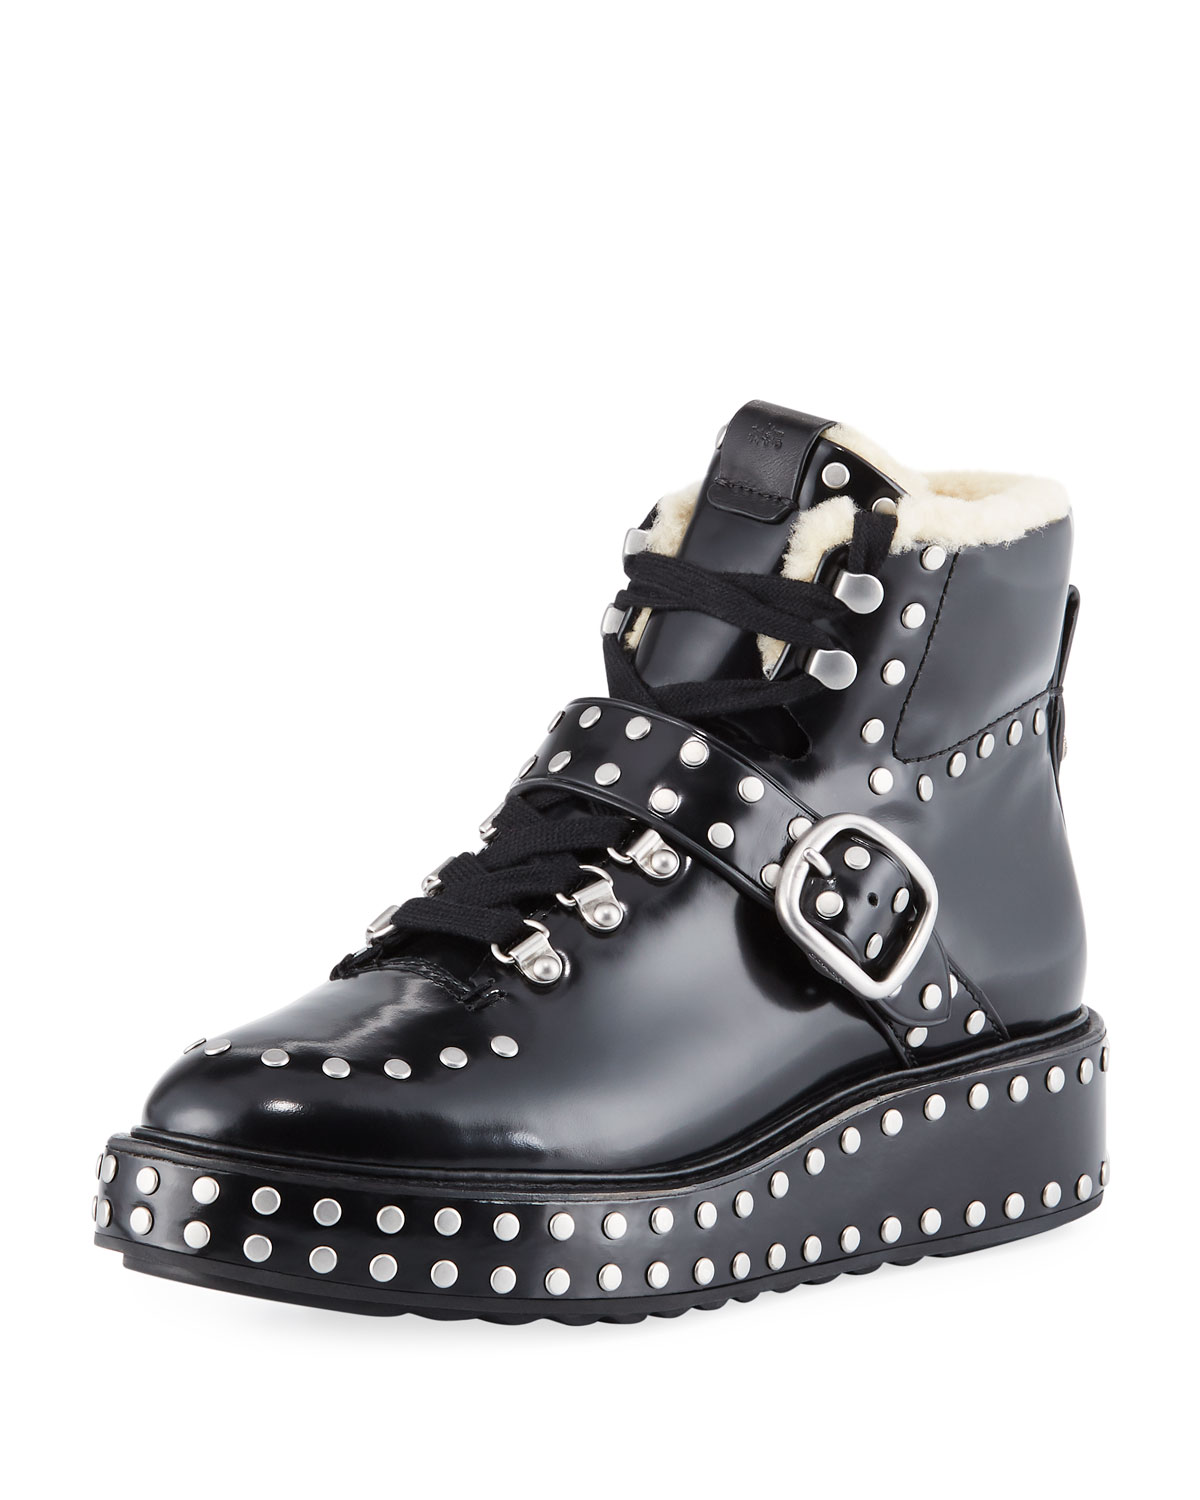 3adc093c4bf Urban Hiker Studded Boots